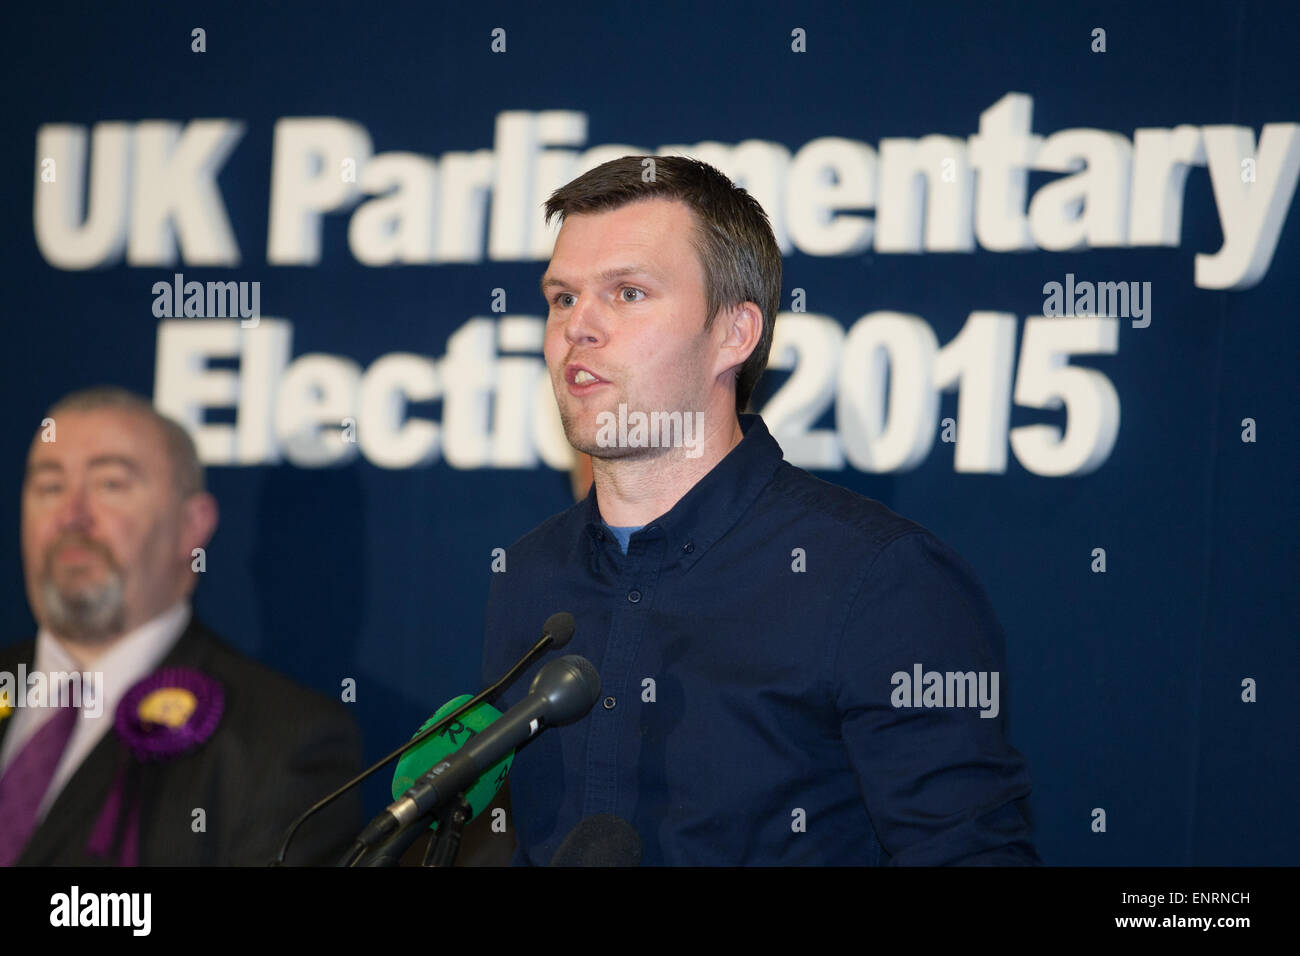 Belfast UK. 7th May 2015 General Election: Gerry Carroll from People Before Profit gives his speech after loosing - Stock Image